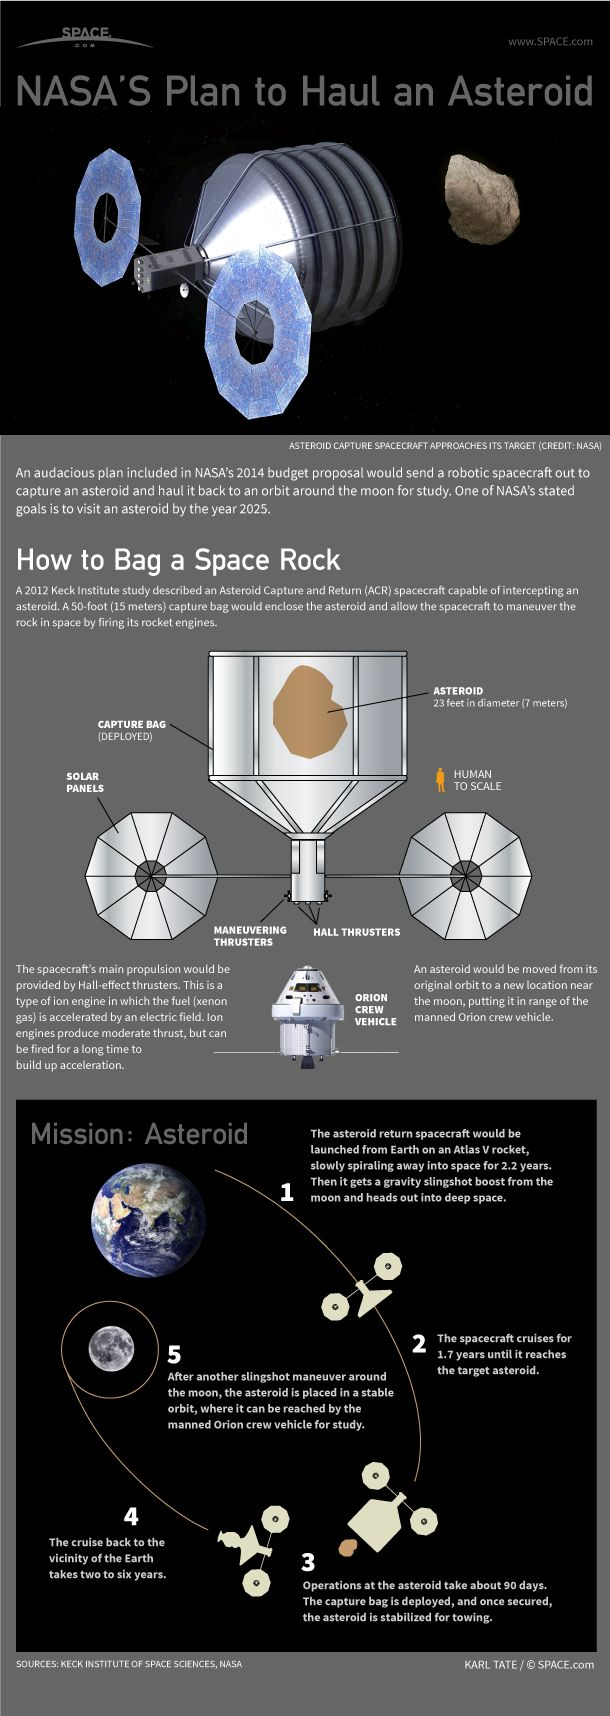 Fly Me to the Minimoon: Tiny Asteroids Near Earth Touted for Human Exploration | Space.com